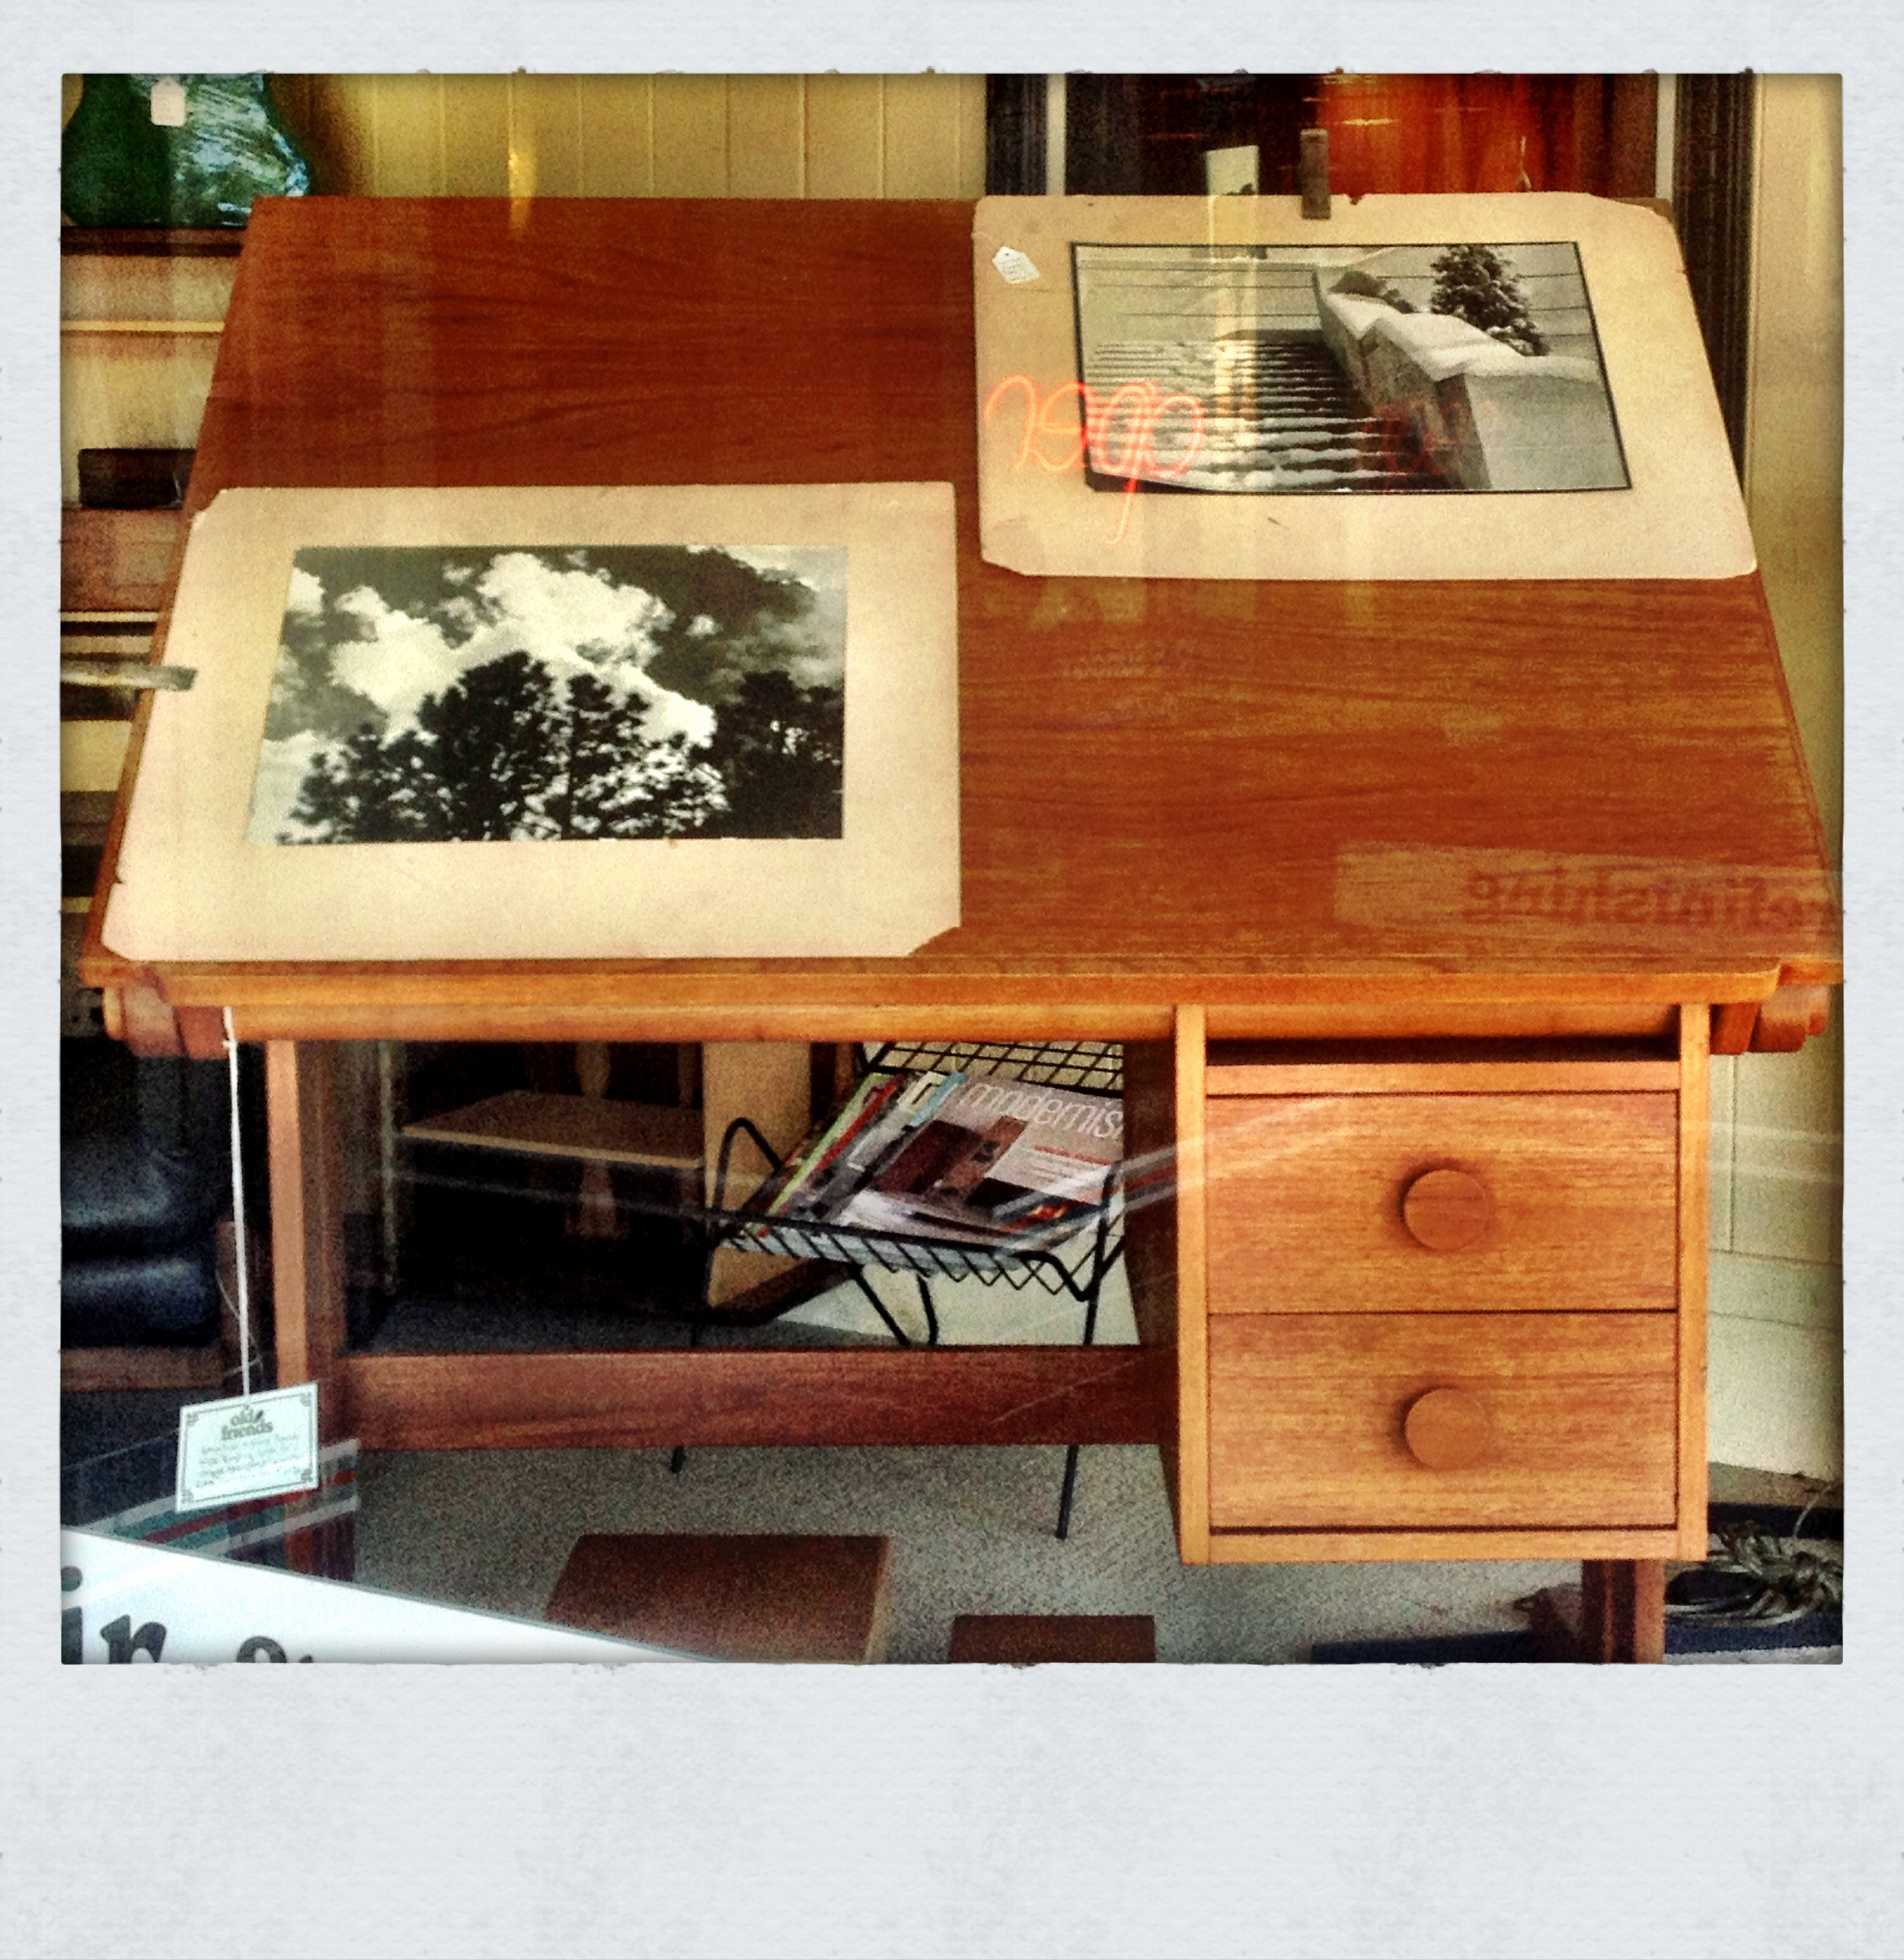 Mcm drafting board in the window. Now mine!